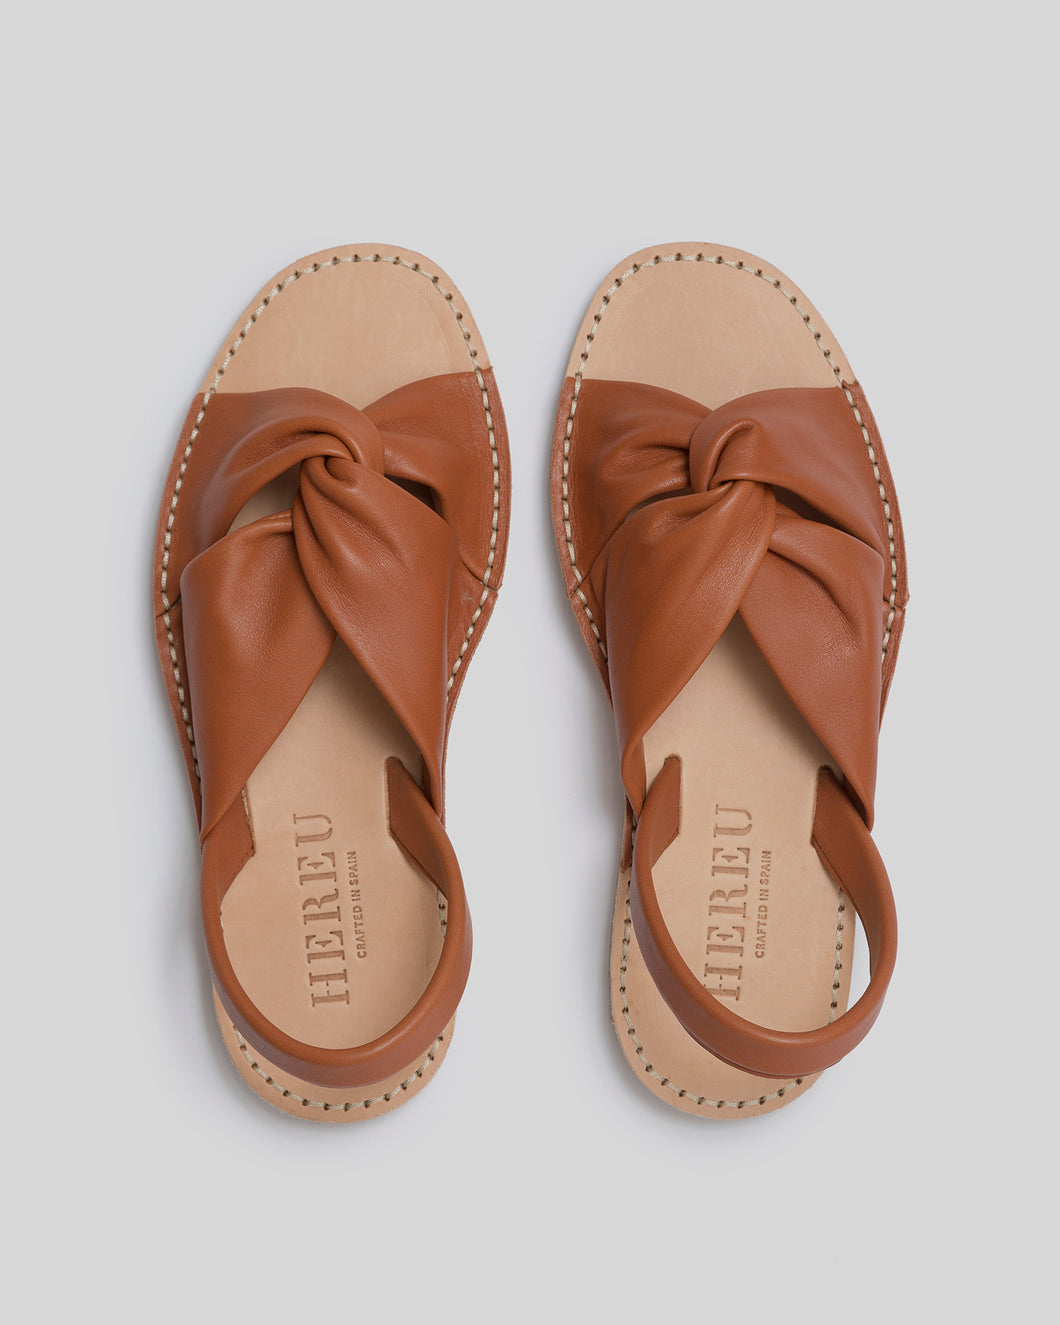 ADDAIA - Knot Leather Flat Sandal